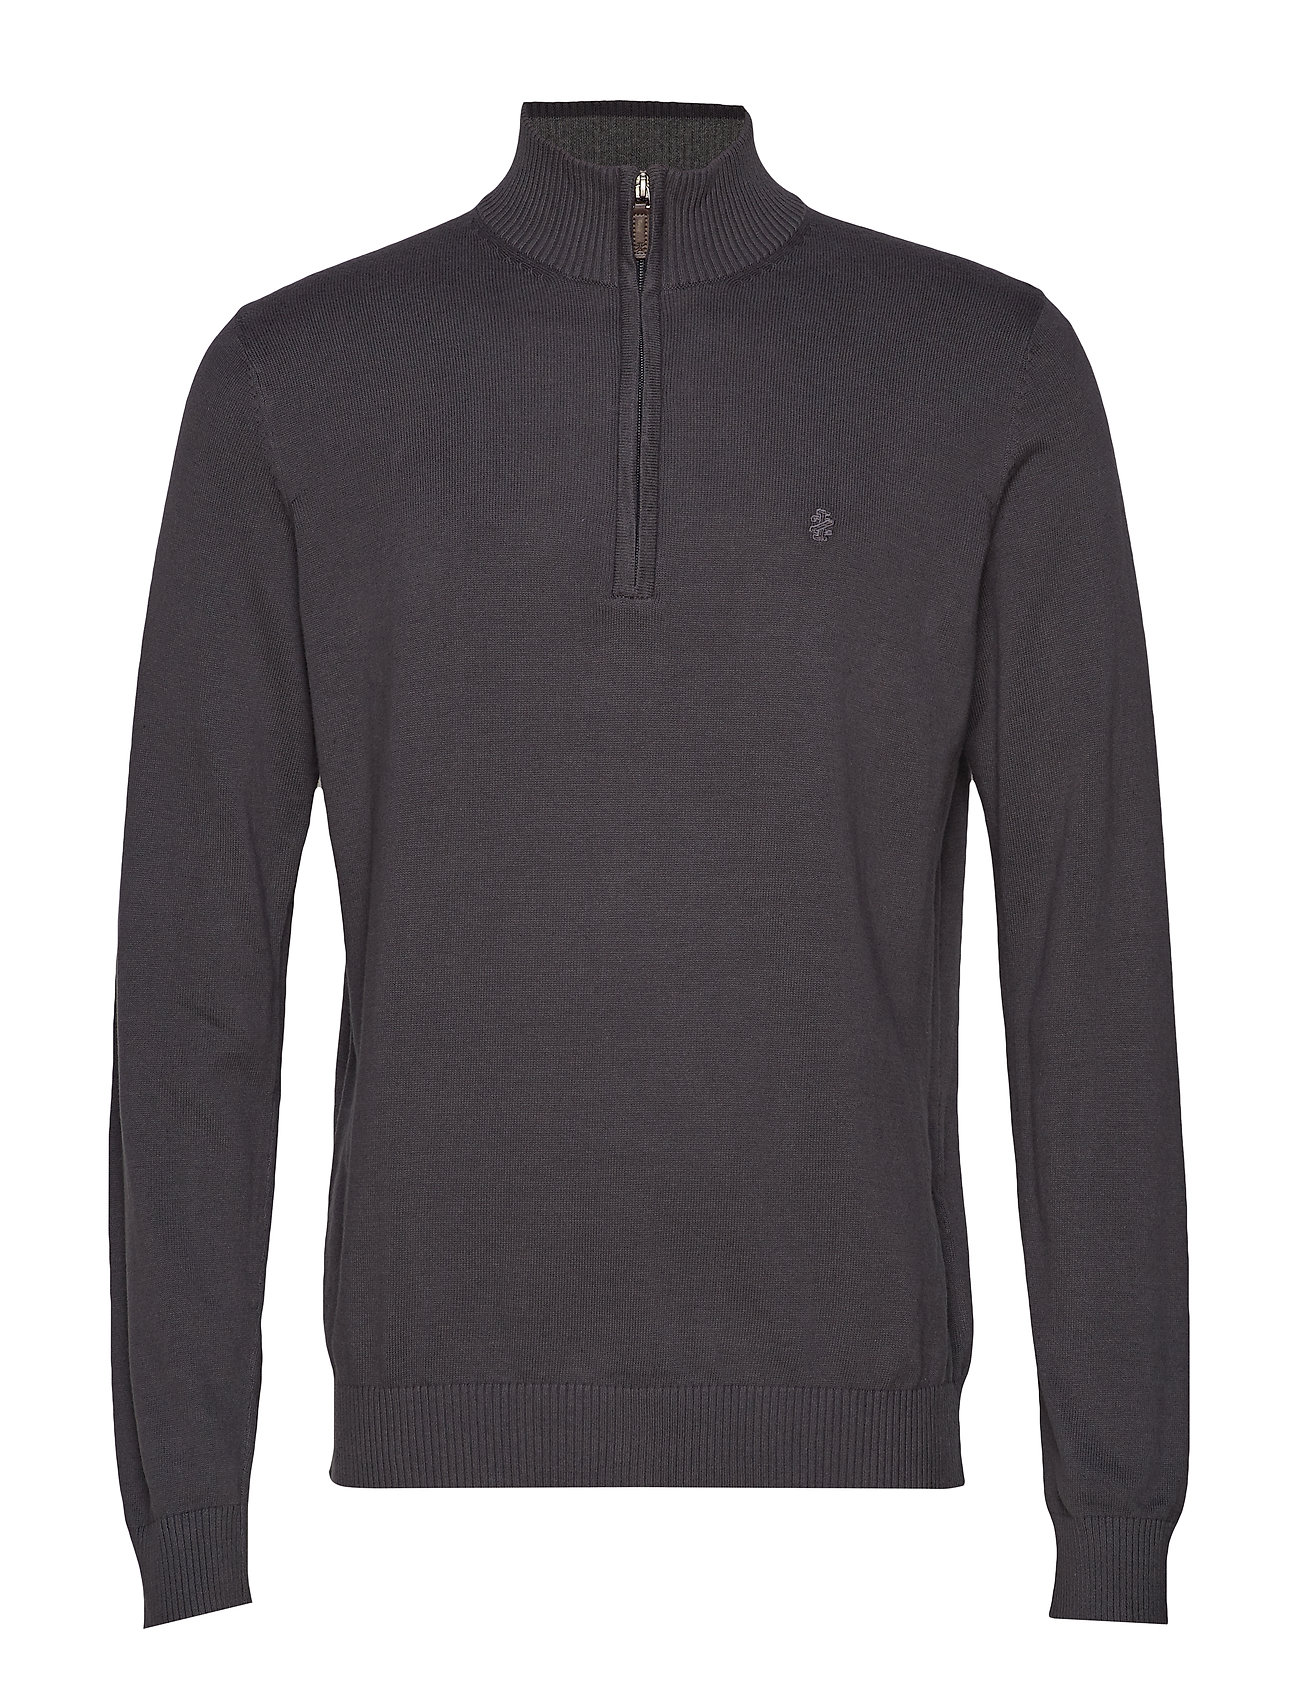 IZOD 12GG 1/4 ZIP SWEATER - ASPHALT